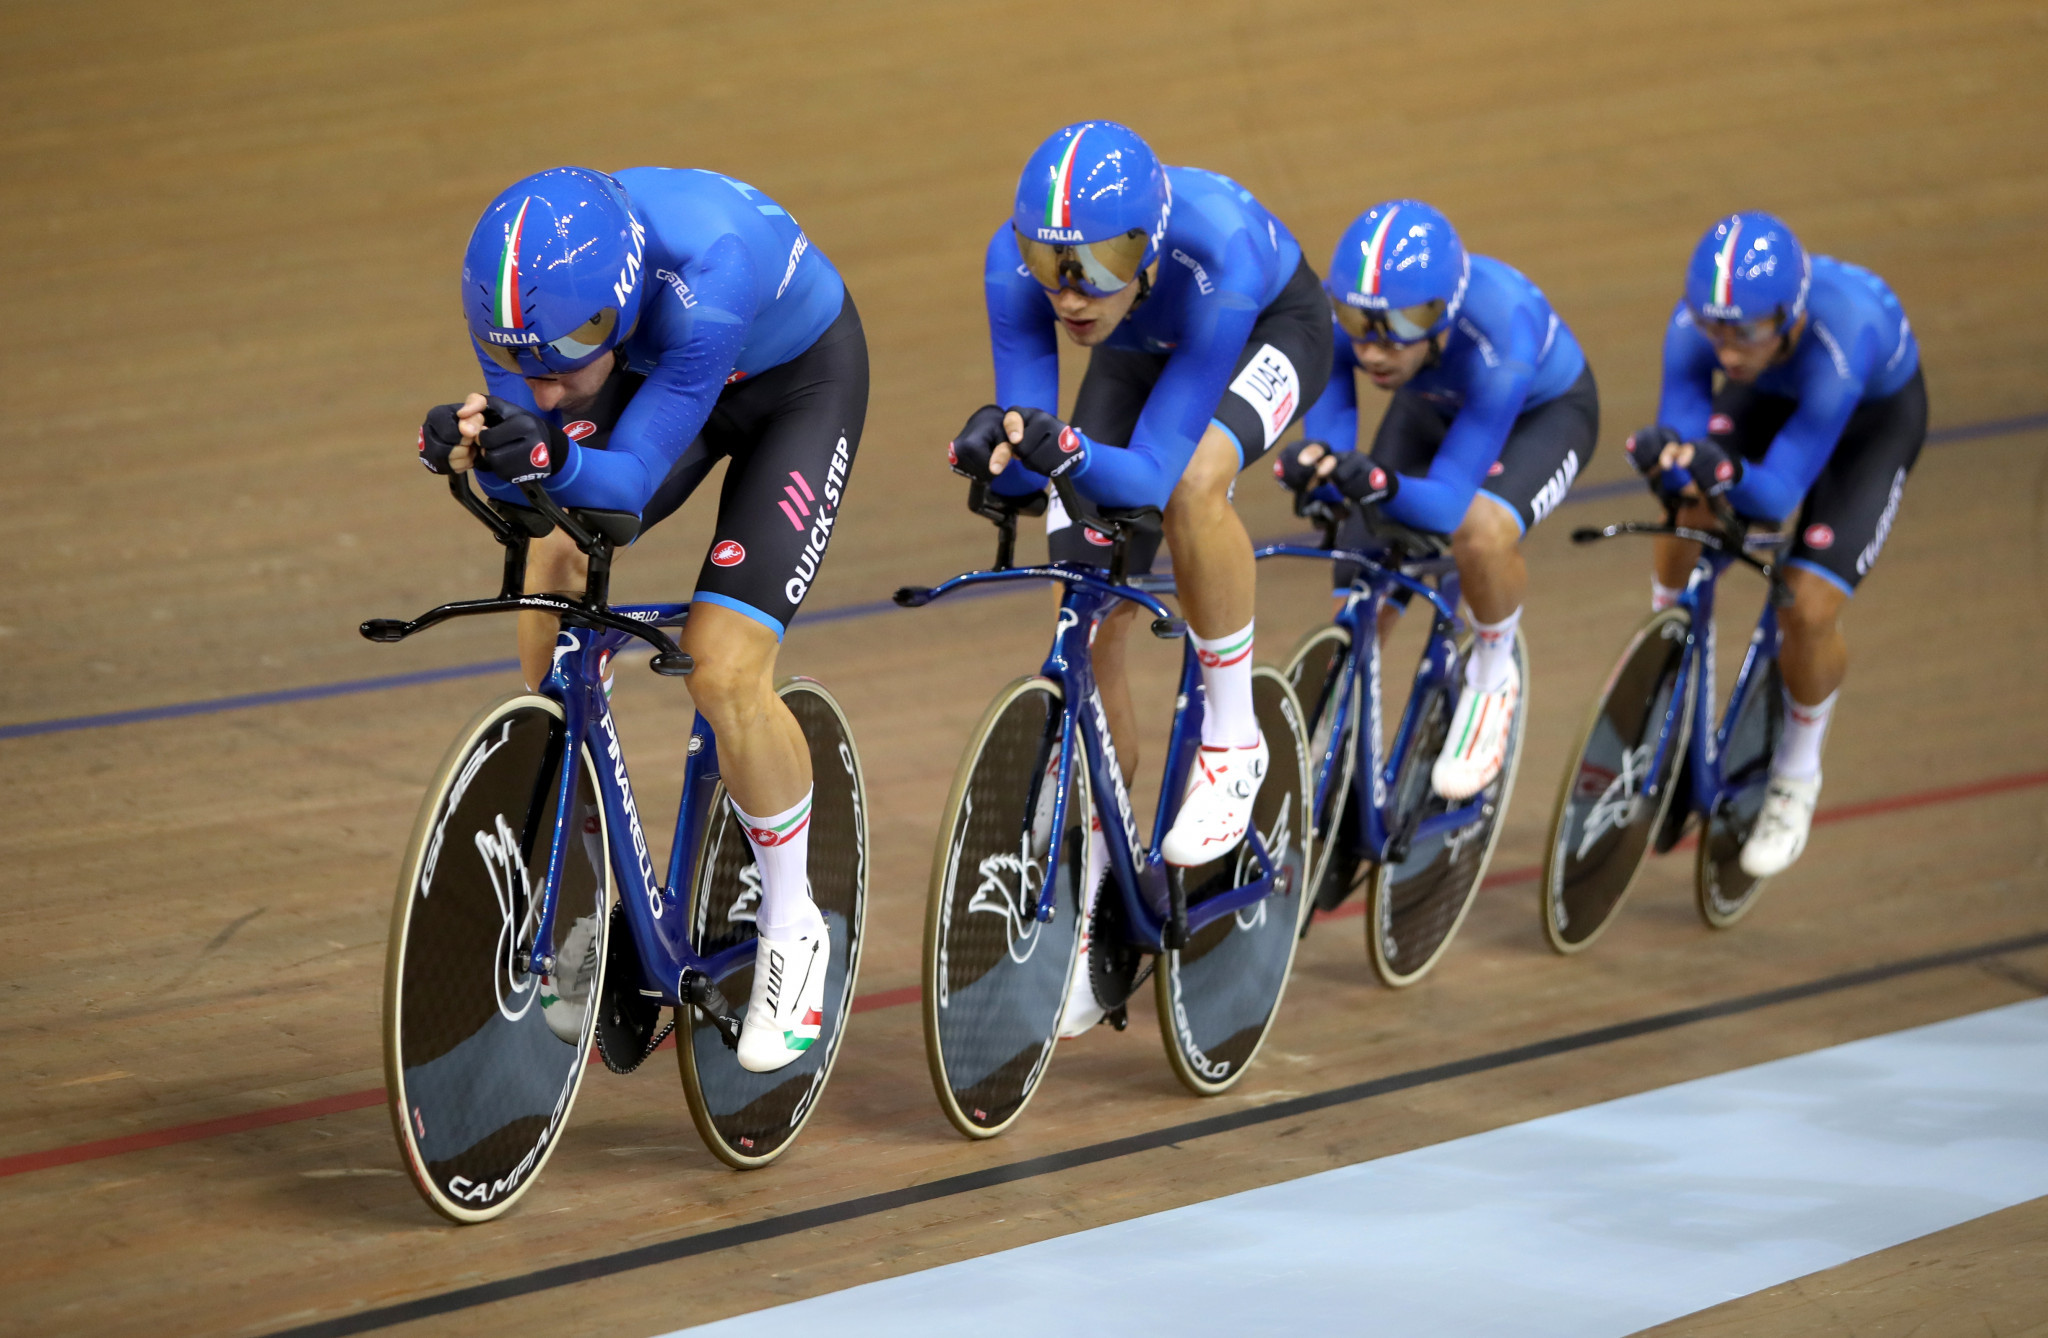 Italy posted the quickest men's qualifying time and will face Britain in the first round ©Getty Images